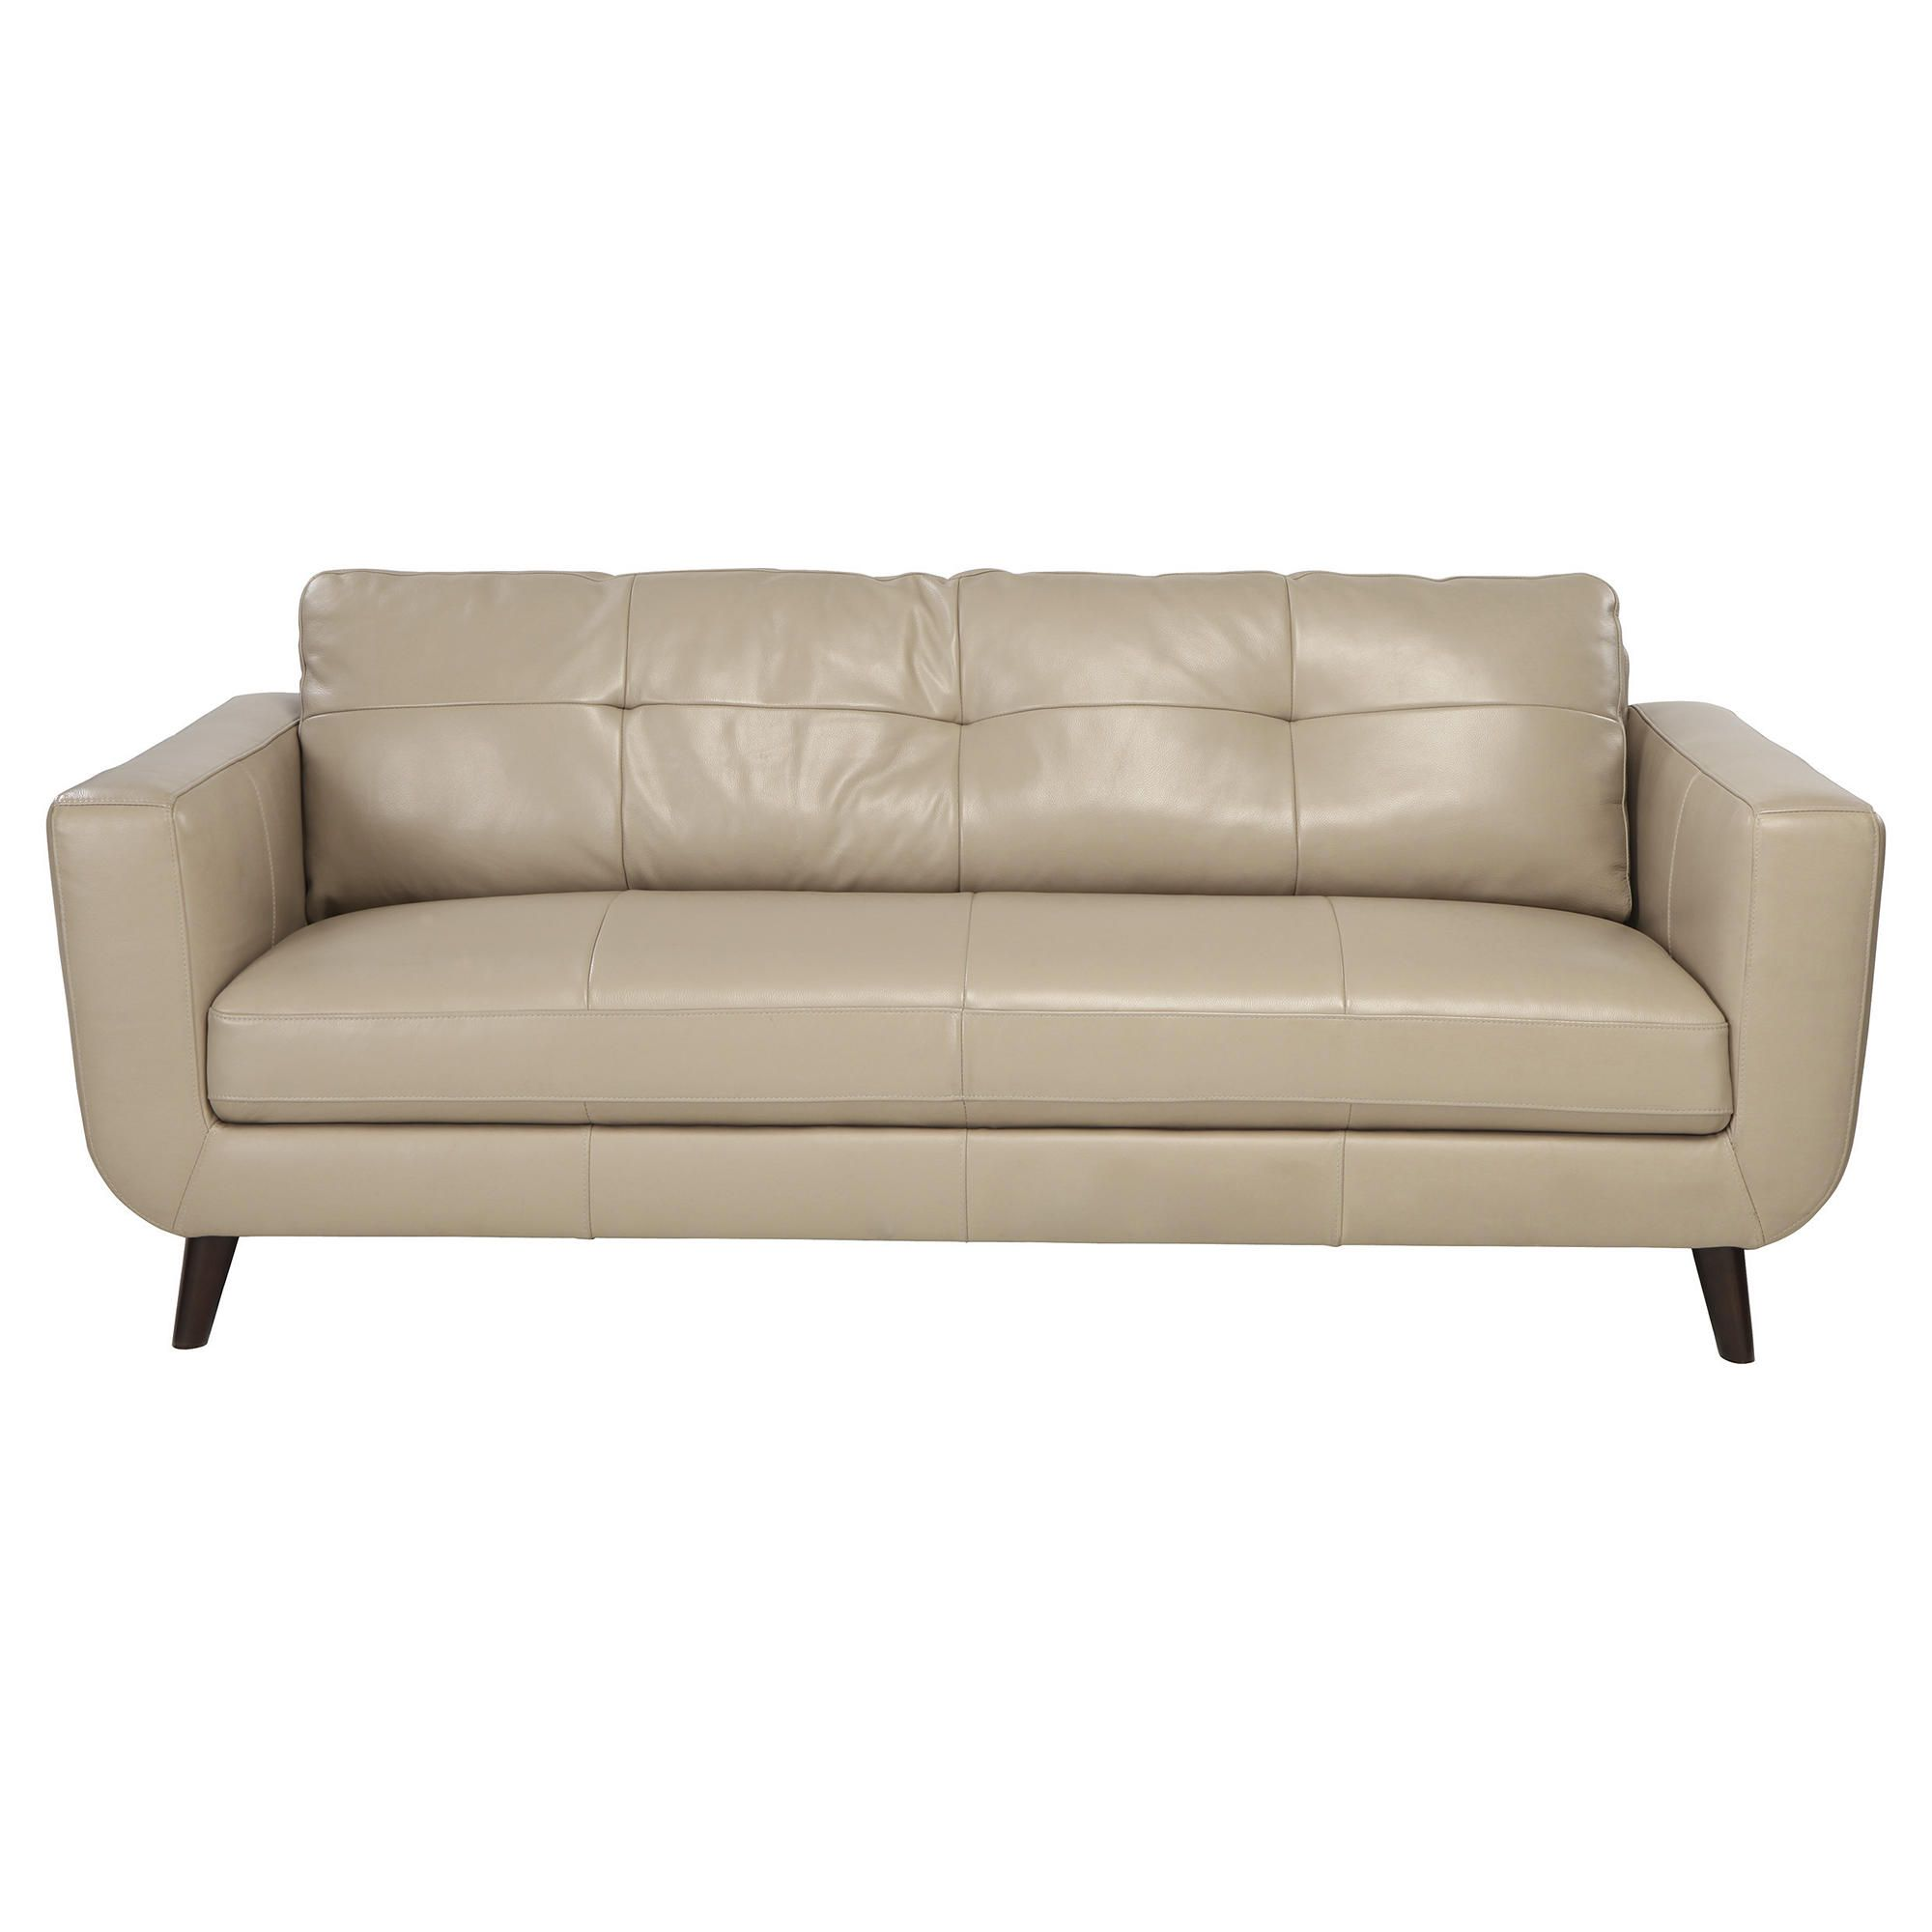 Lorenzo Leather Large Sofa Taupe at Tesco Direct